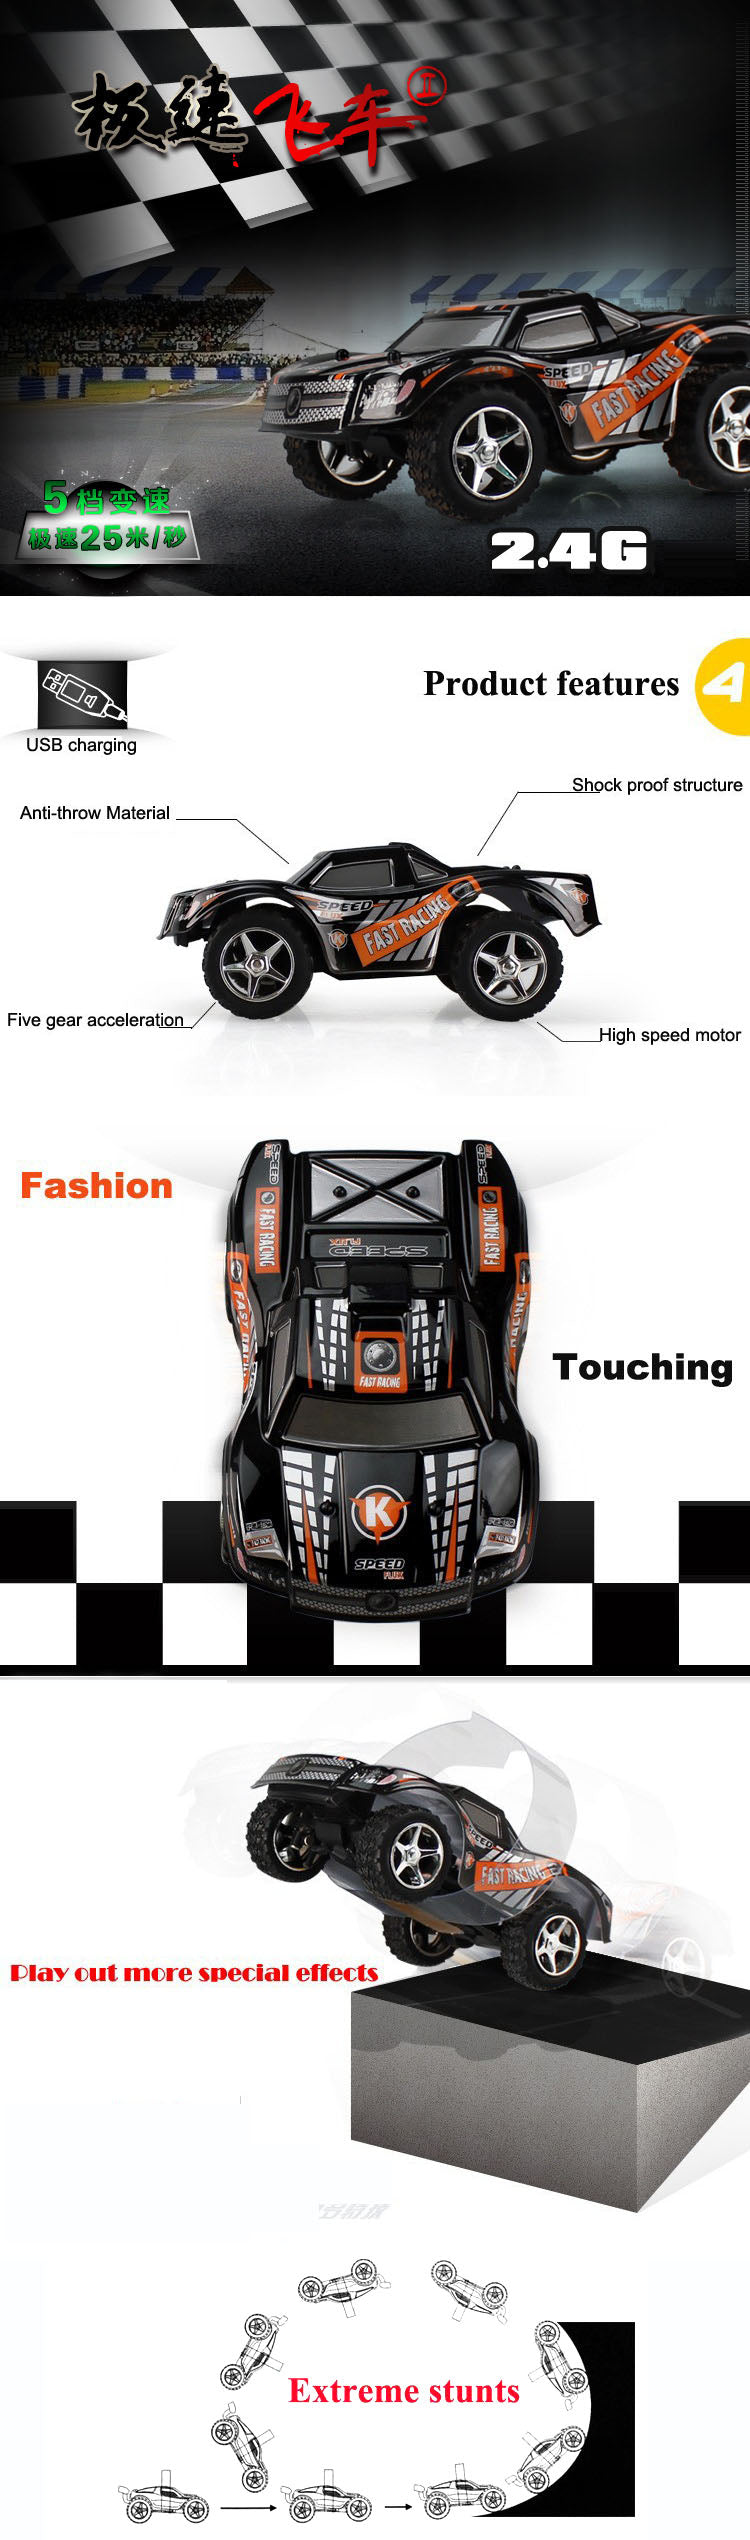 Wltoys L939 5 Channel High-speed Remote Control RC Car